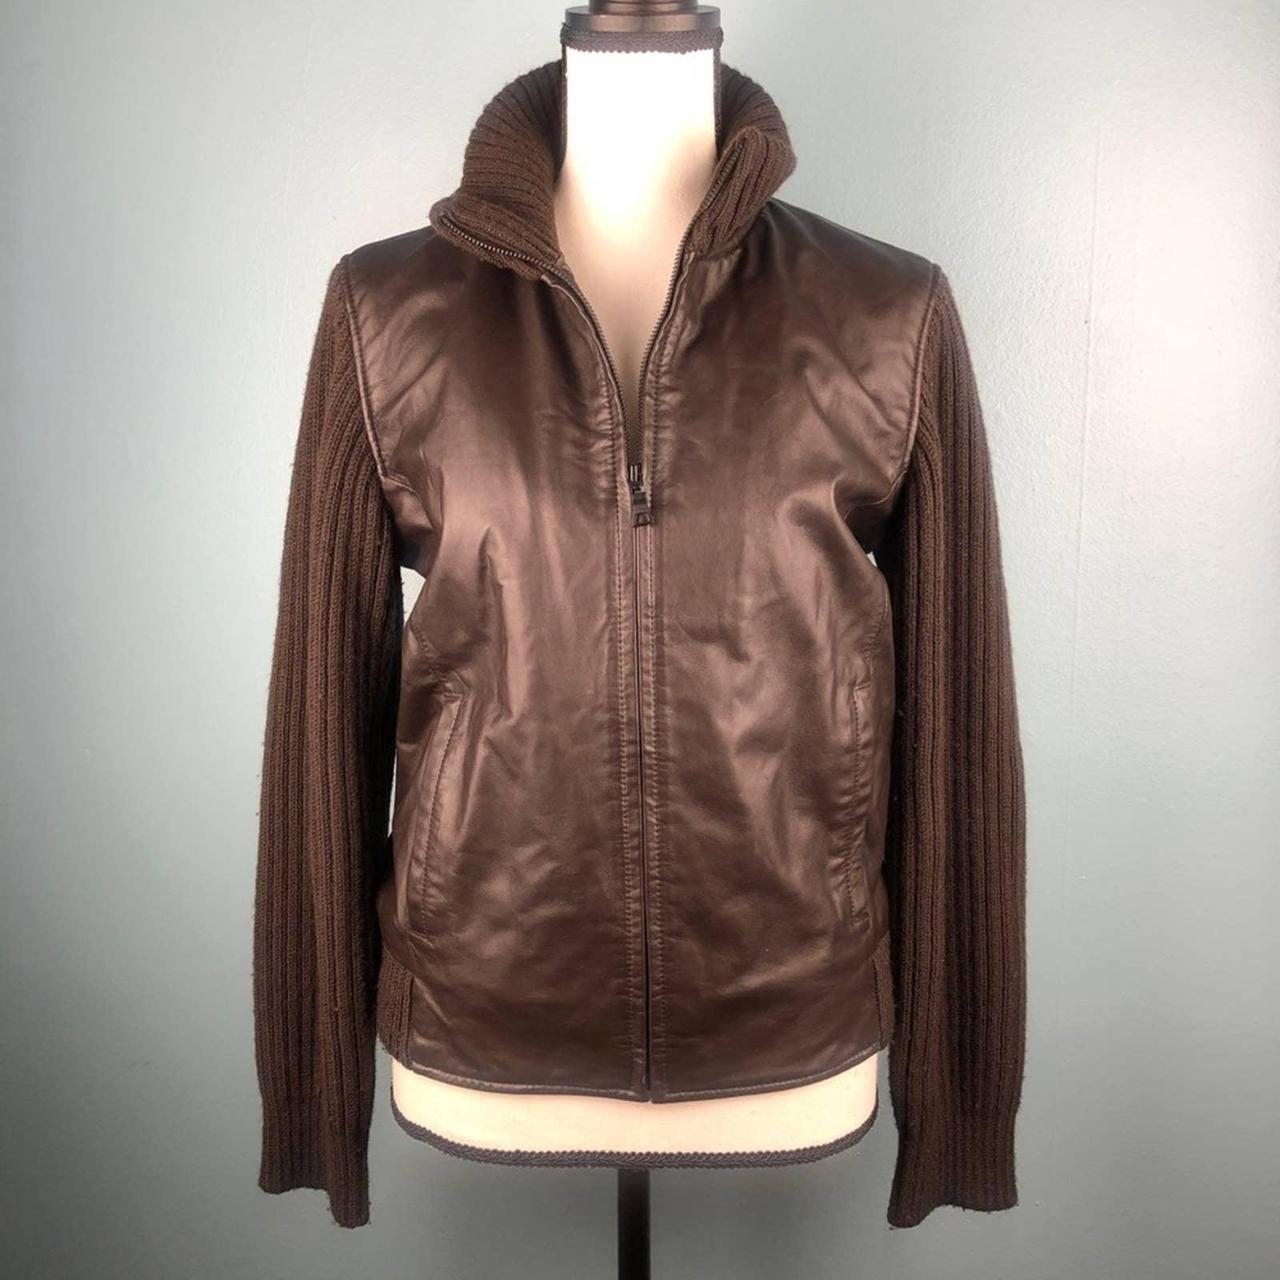 Product Image 1 - Eddie Bauer Real Leather Bomber